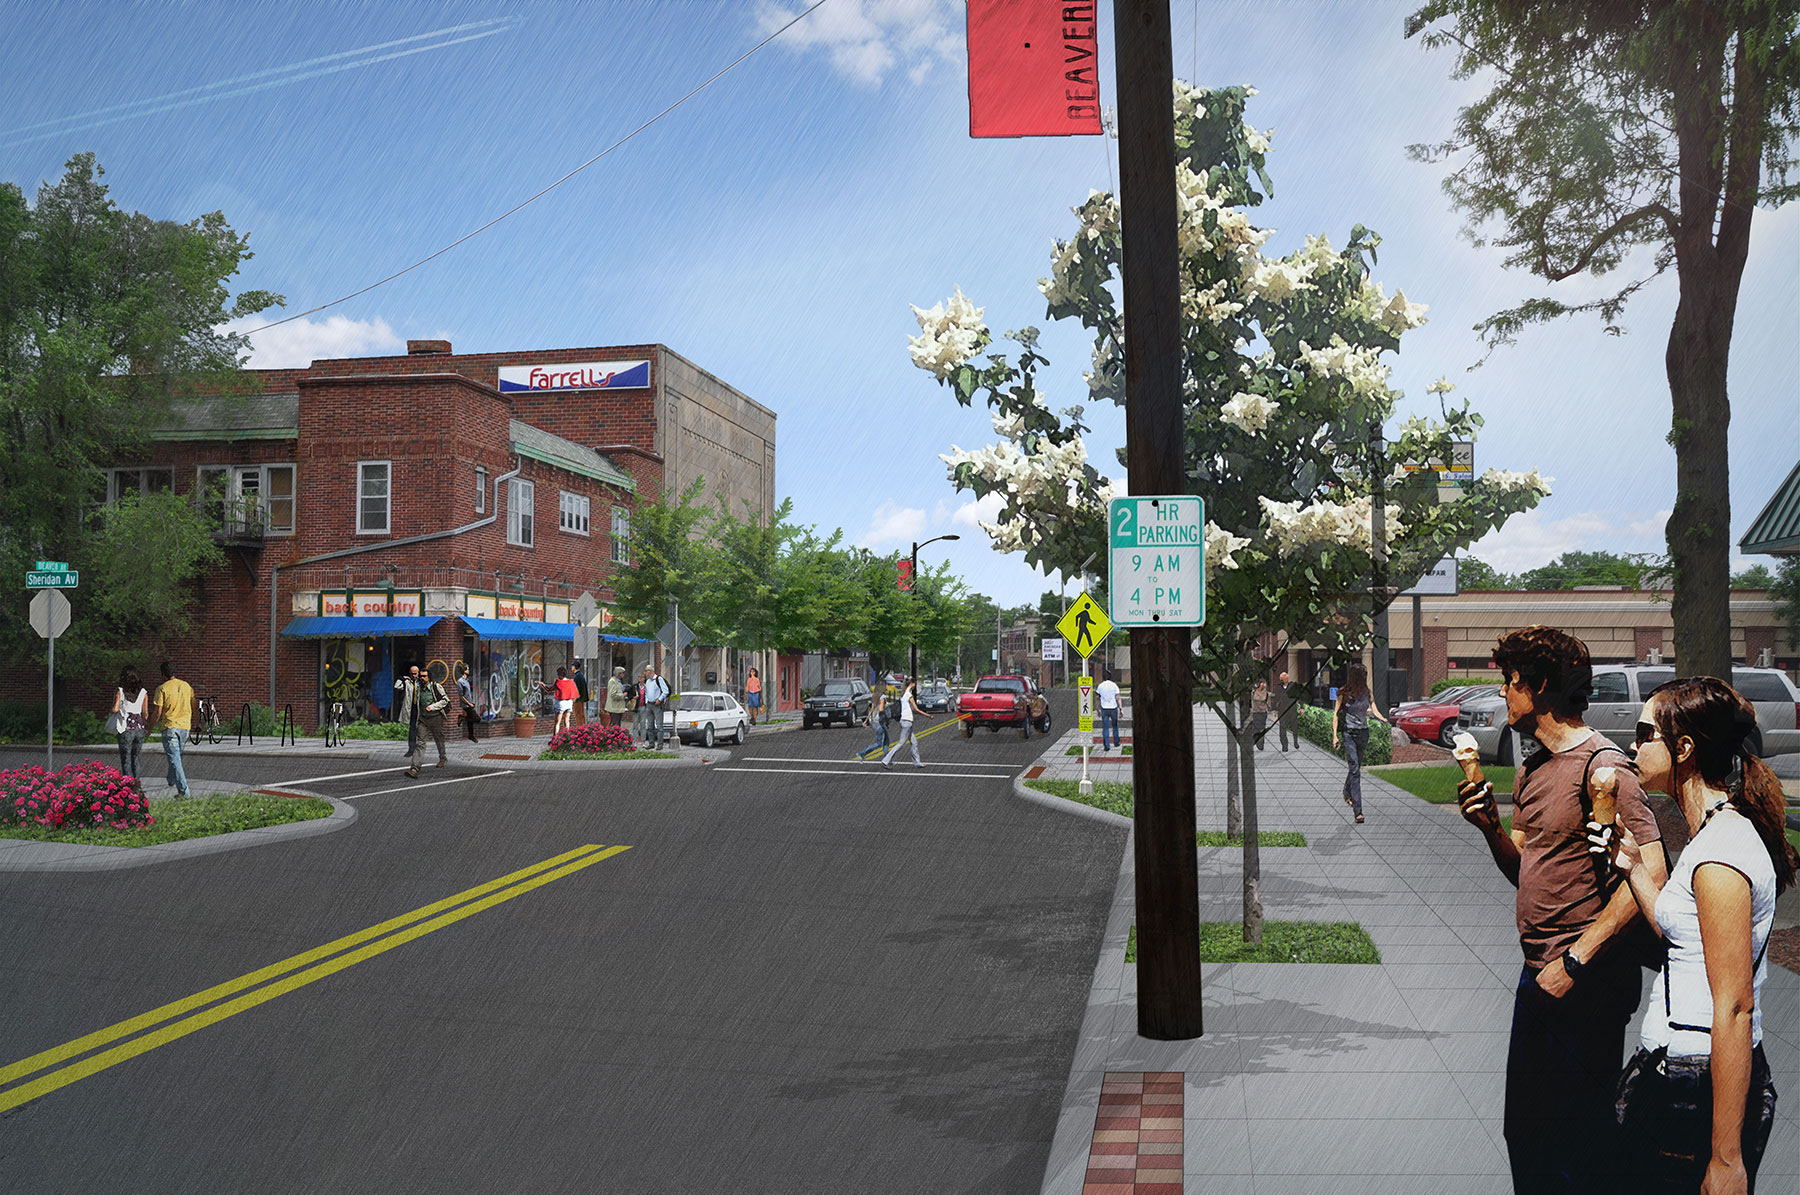 BEAVER AVENUE REVITALIZATION PLAN